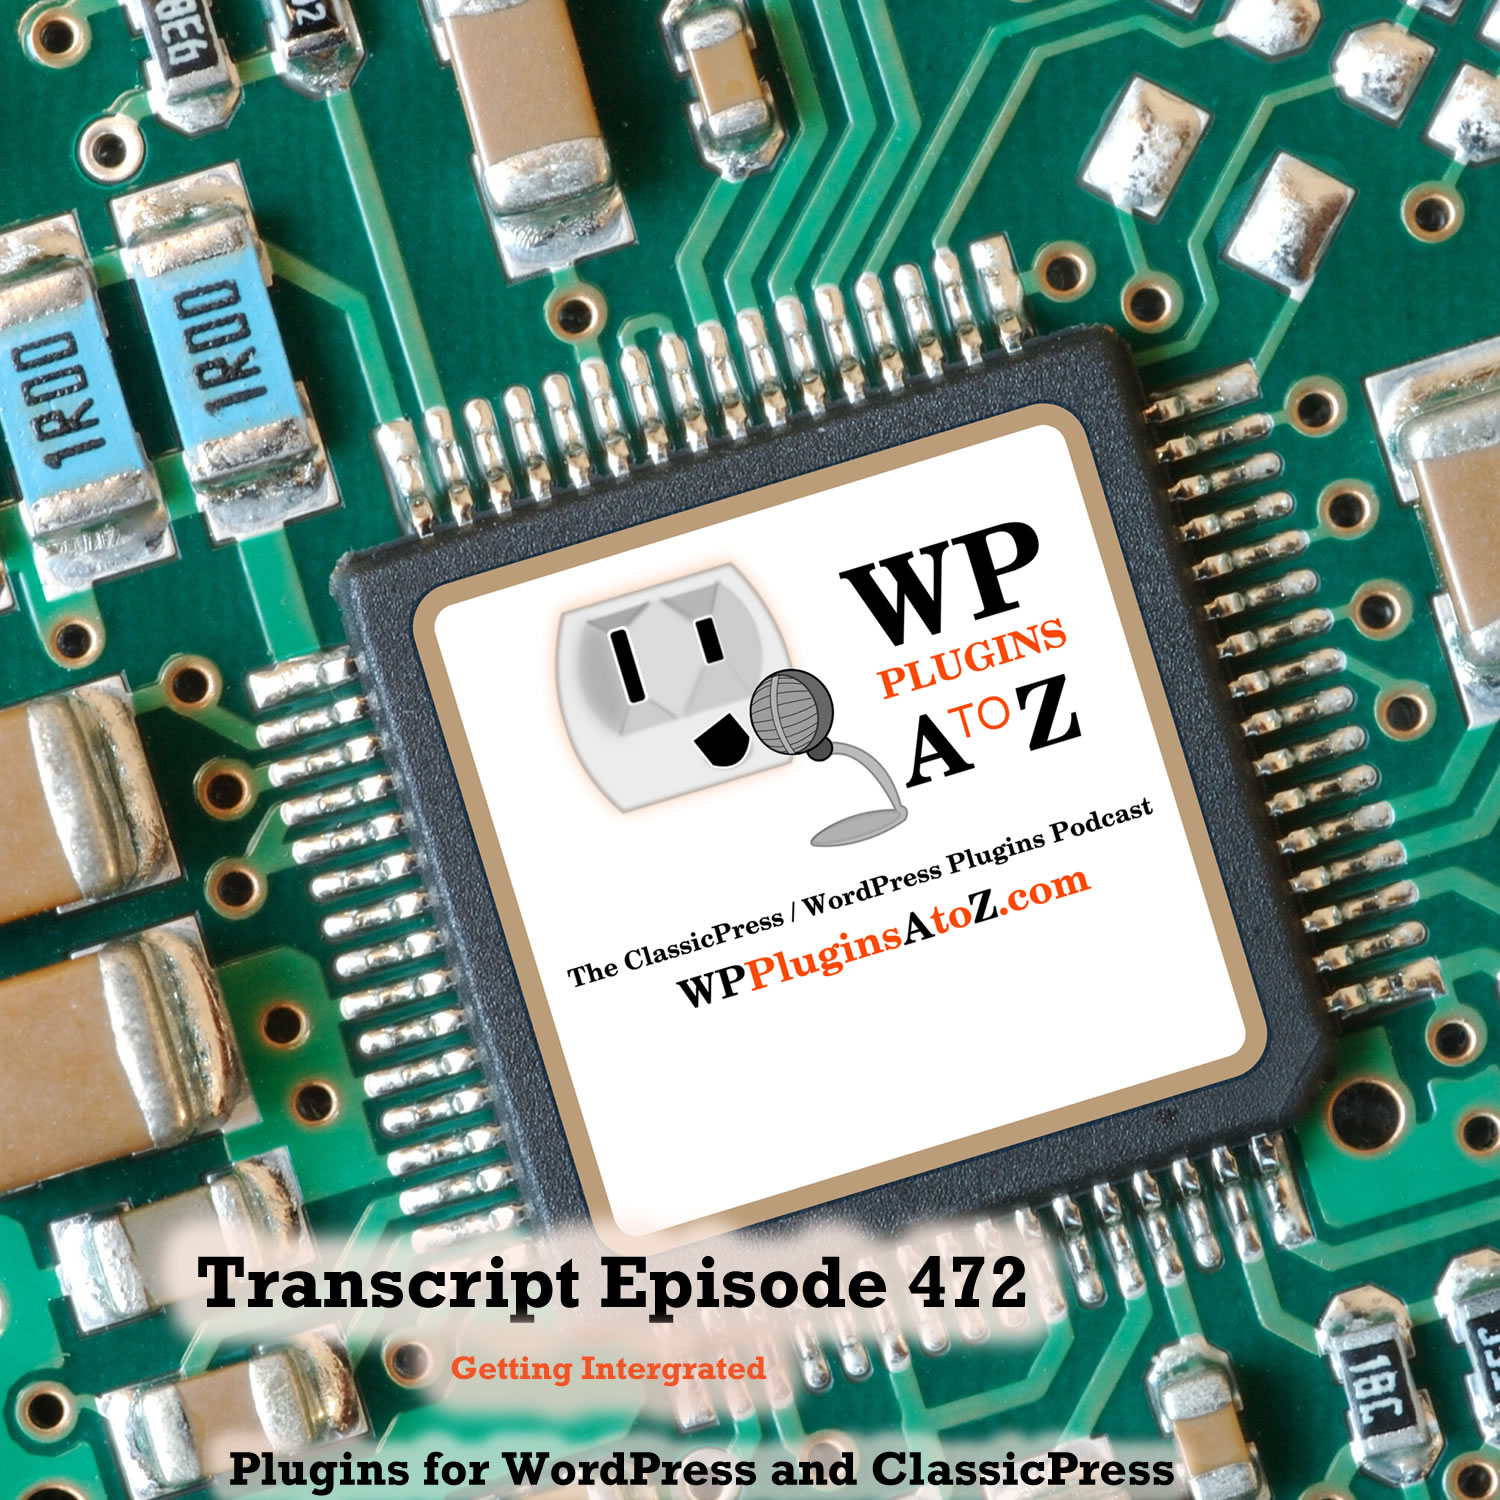 It's Episode 472 with plugins for Temporary Access, Replacing Media, Integrating Stats, Your Customer Testimonials and ClassicPress Options. It's all coming up on WordPress Plugins A-Z!